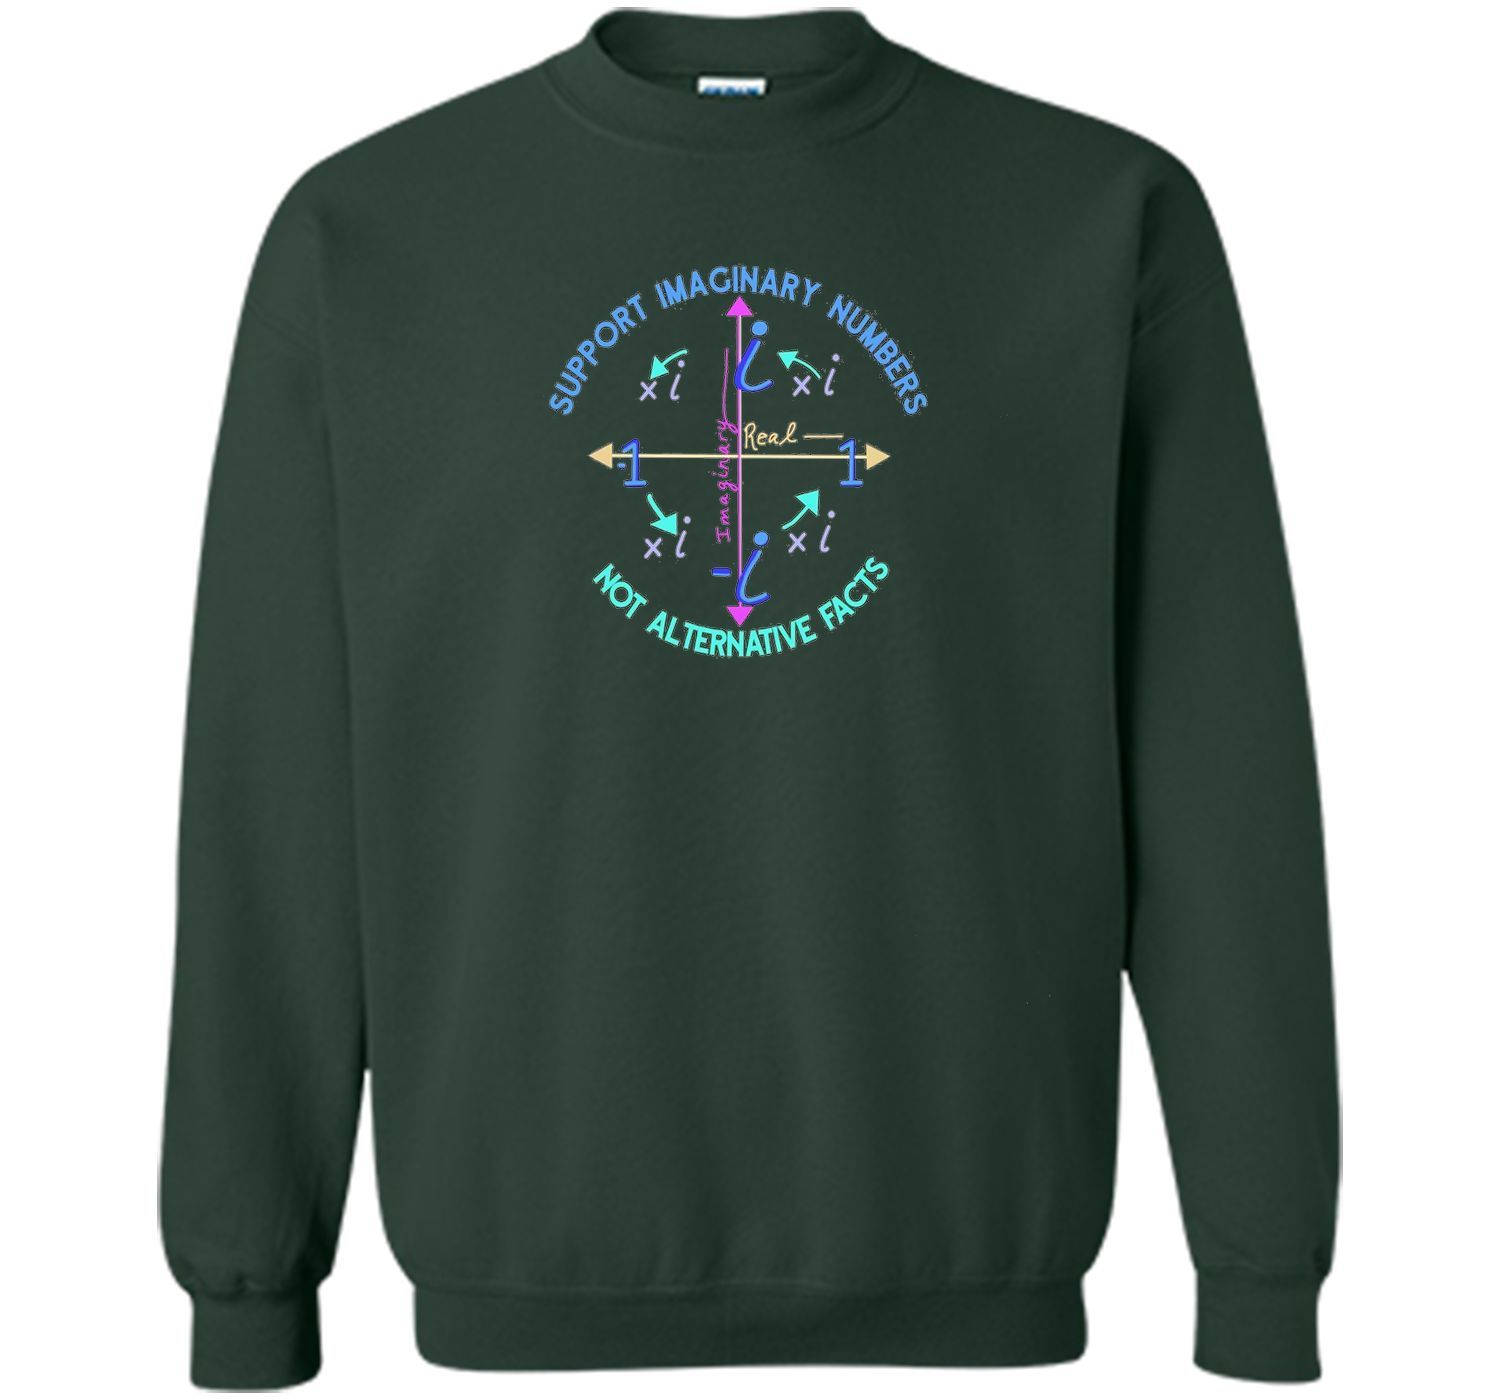 Support Imaginary Numbers Not Alternative Facts T Shirt